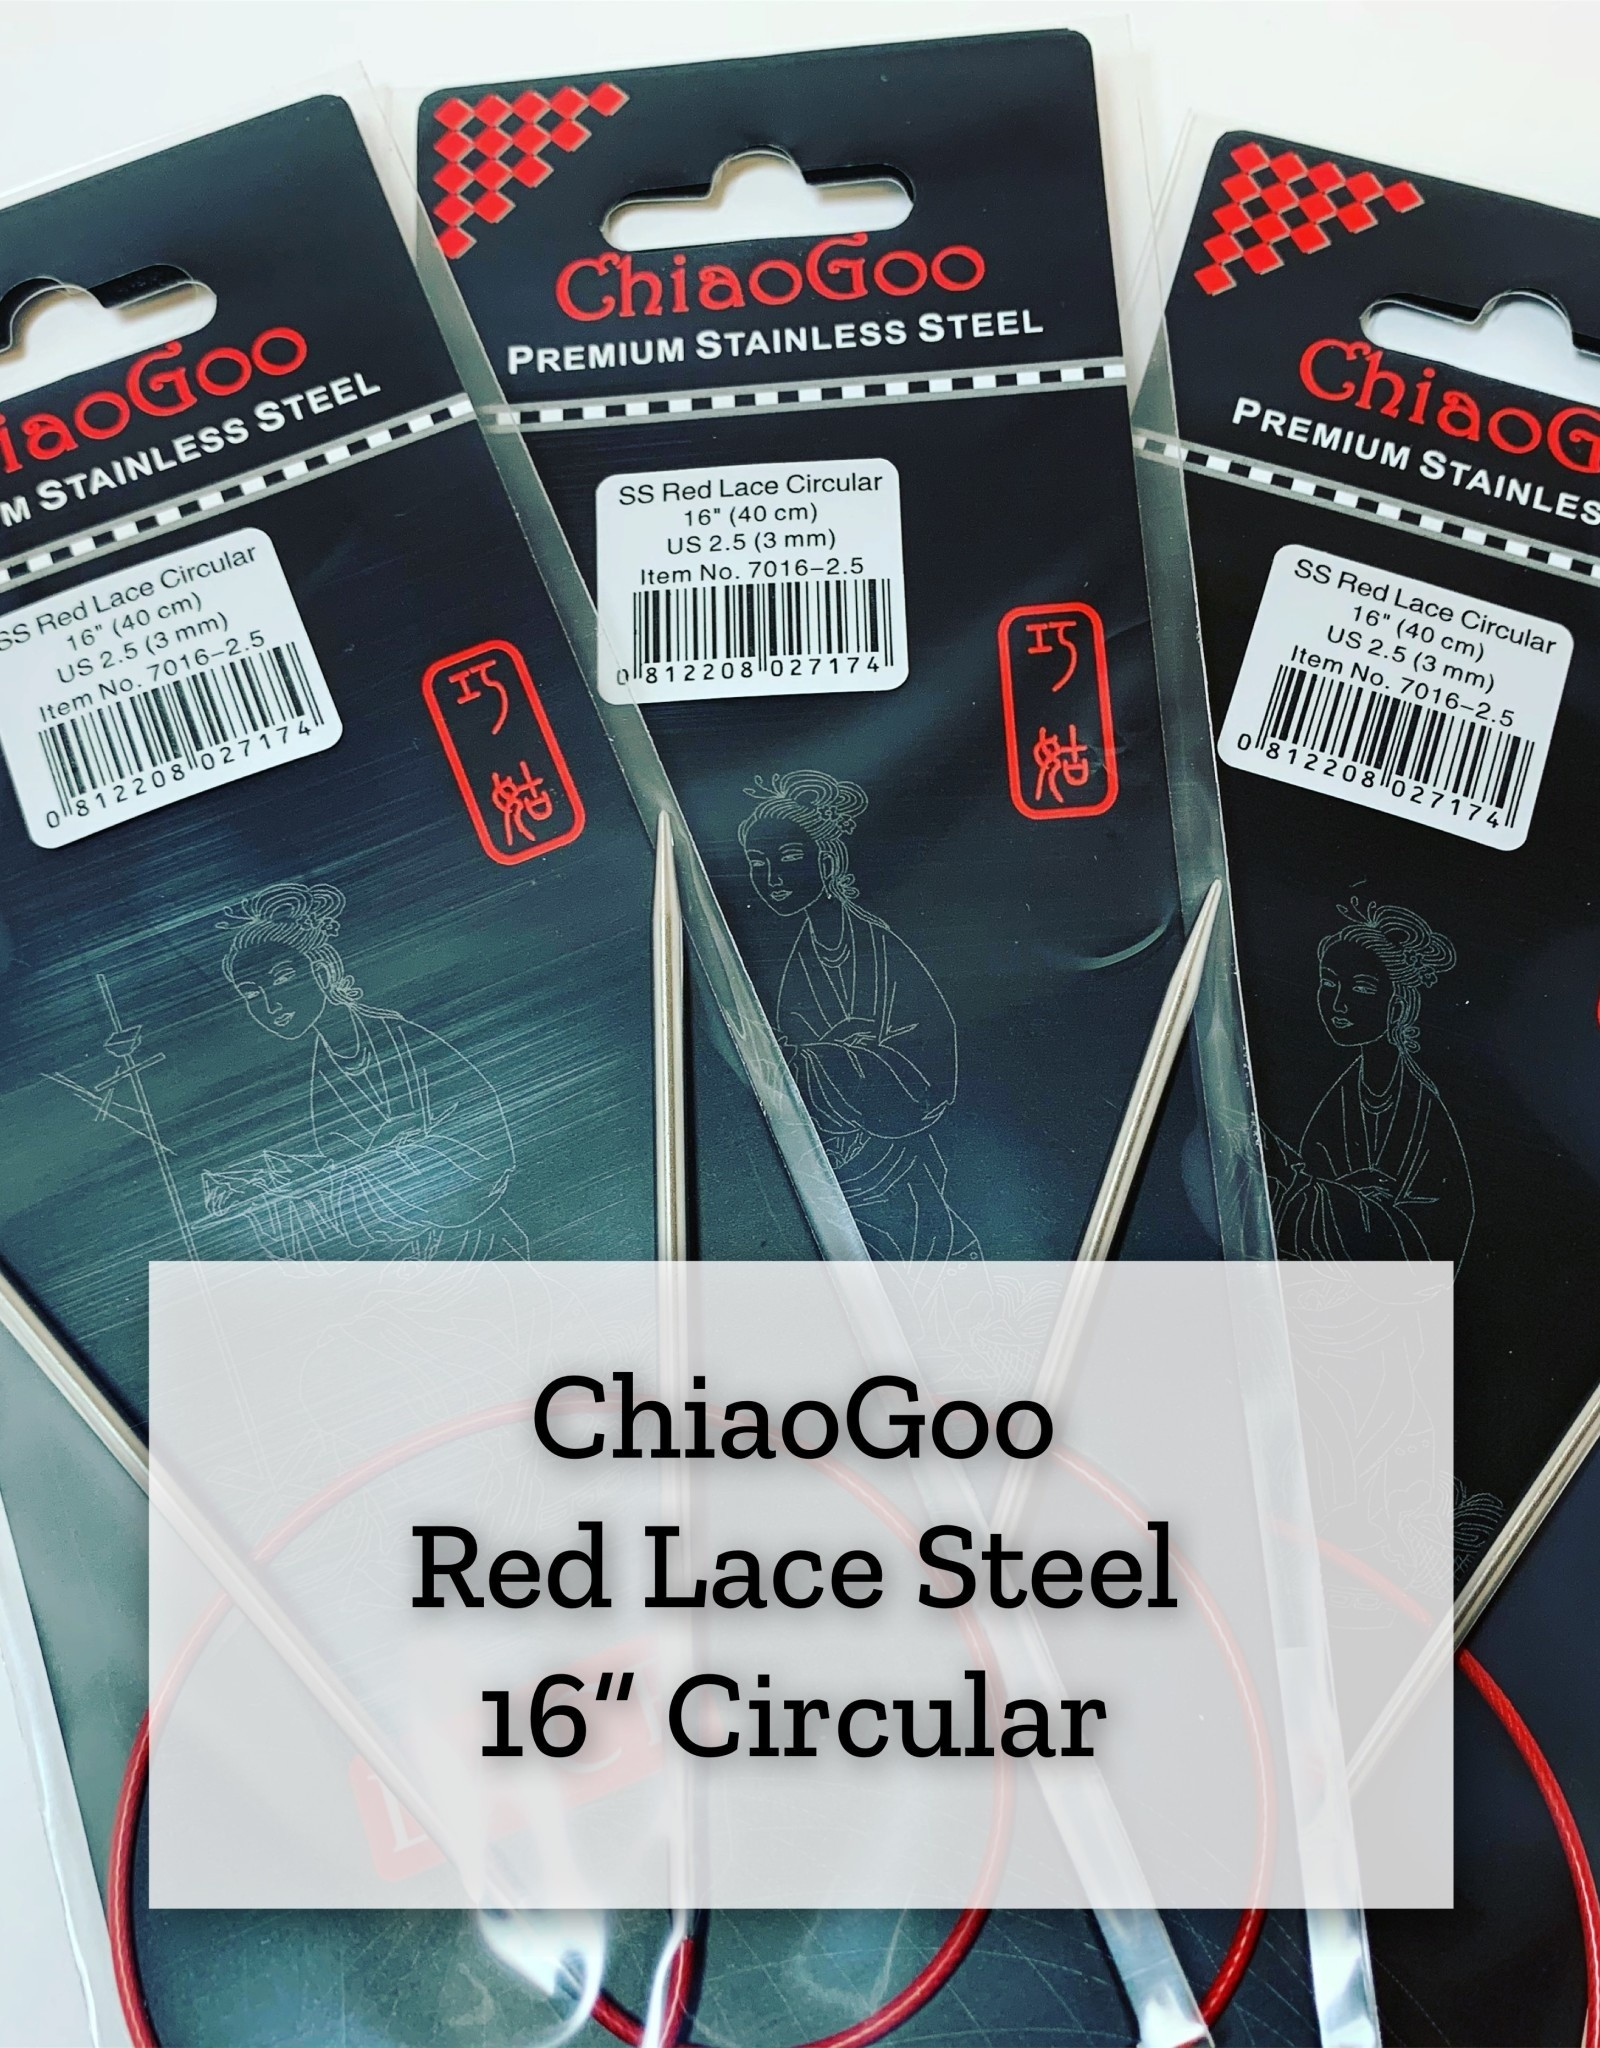 "ChiaoGoo Red Lace Steel - 16"" 4.5 mm"